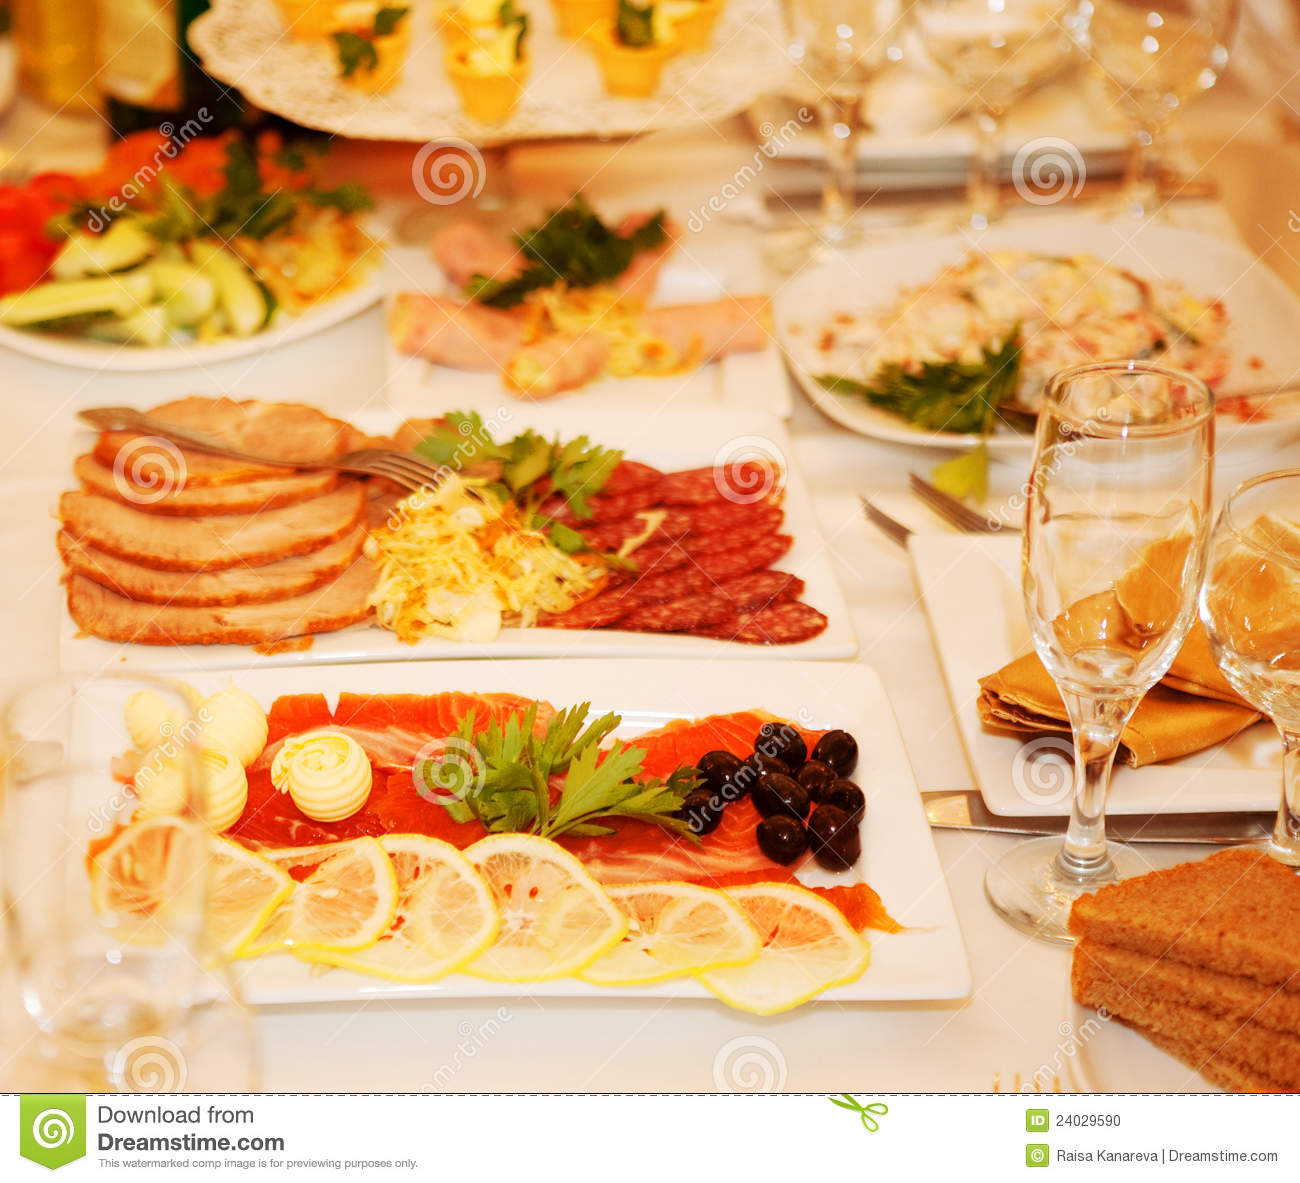 banquet table with food stock photo image of fresh banquet 24029590. Black Bedroom Furniture Sets. Home Design Ideas